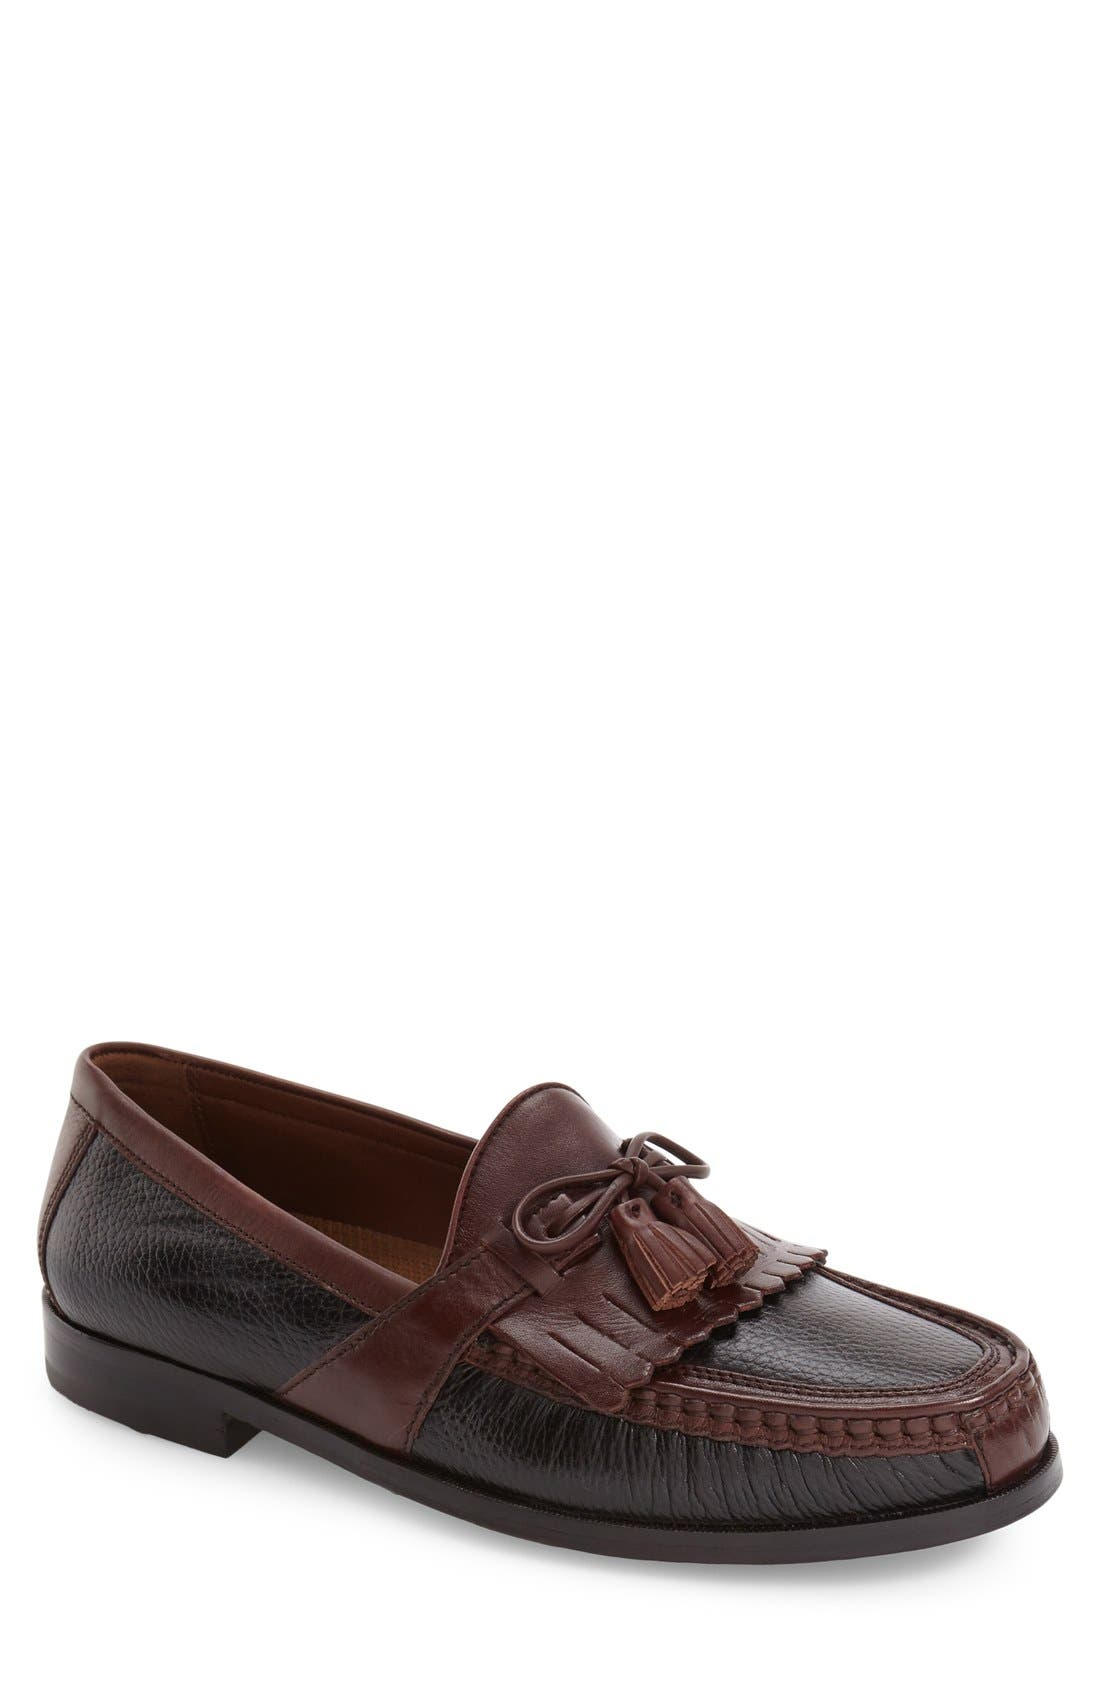 'Aragon II' Loafer,                             Alternate thumbnail 3, color,                             BLACK/ BROWN LEATHER